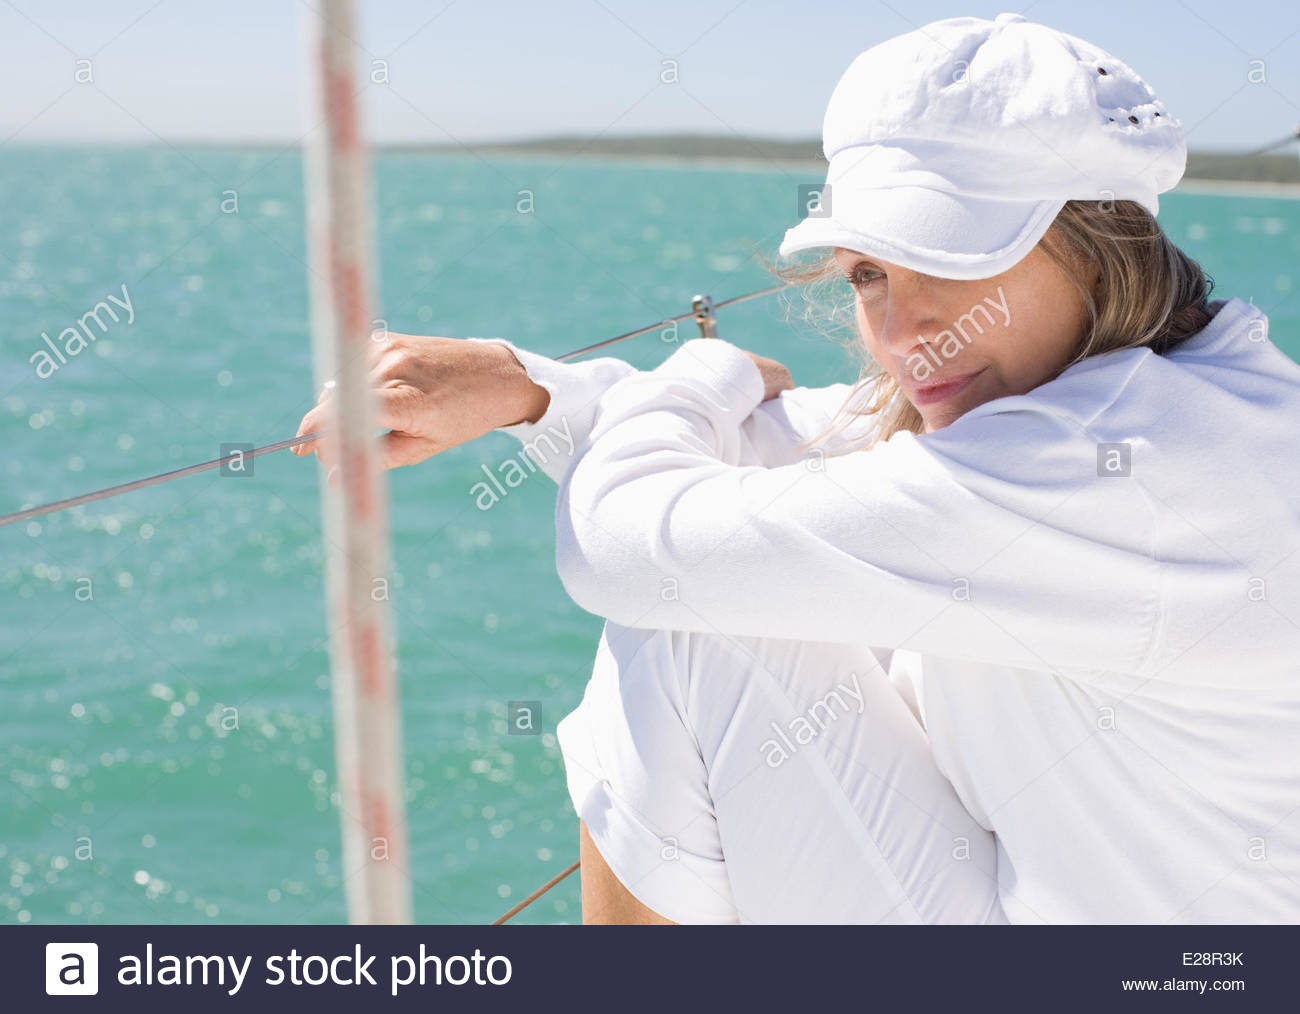 Woman sitting on deck of boat - Stock Image